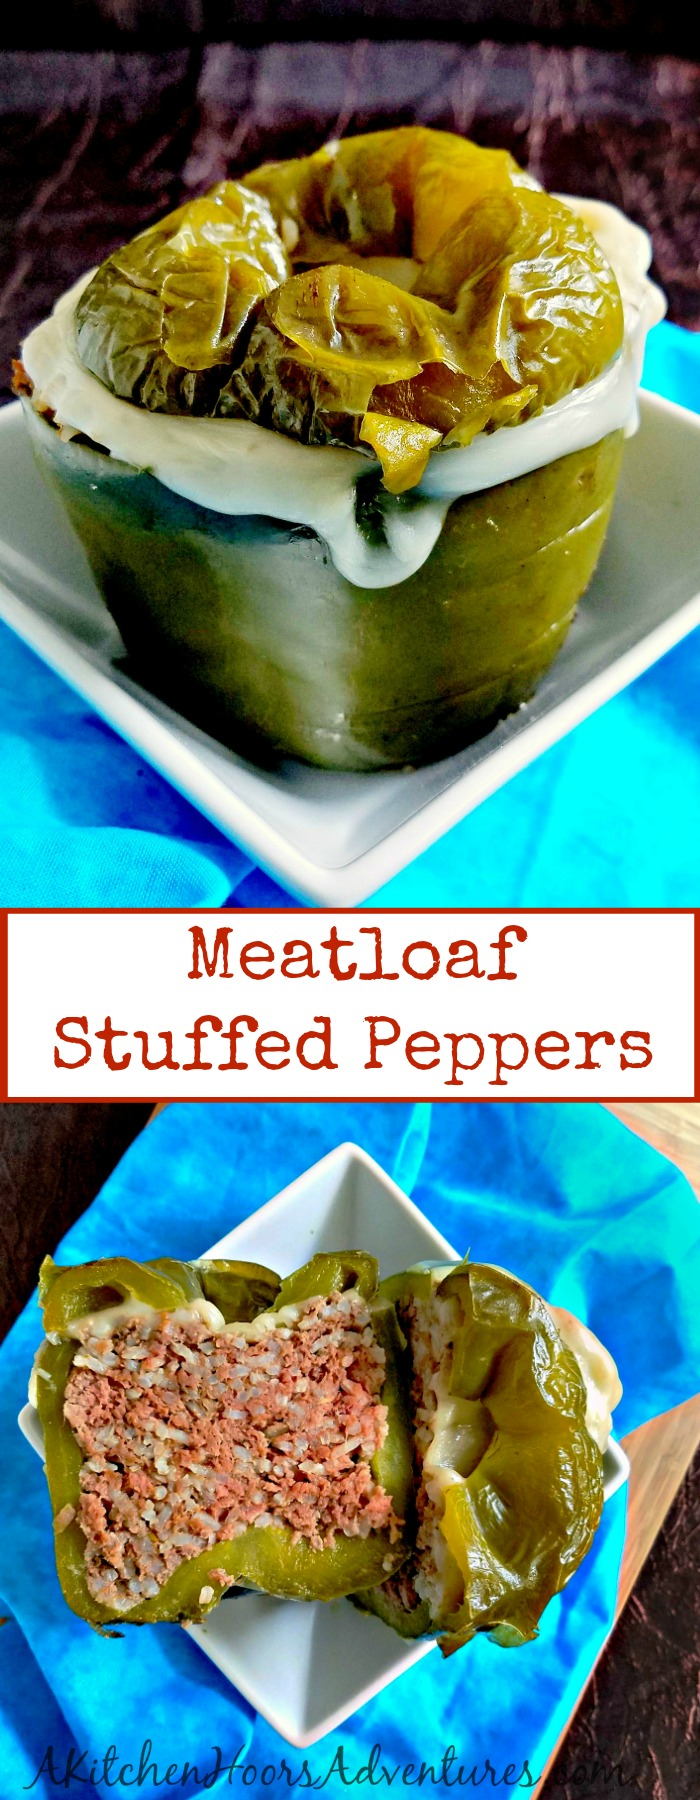 Meatloaf Stuffed Peppers comes together in less time than it takes to preheat the oven but your family will LOVE how delicious it is. #SundaySupper #ricerecipe #easyrecipe #stuffedpepper #healthyrecipe